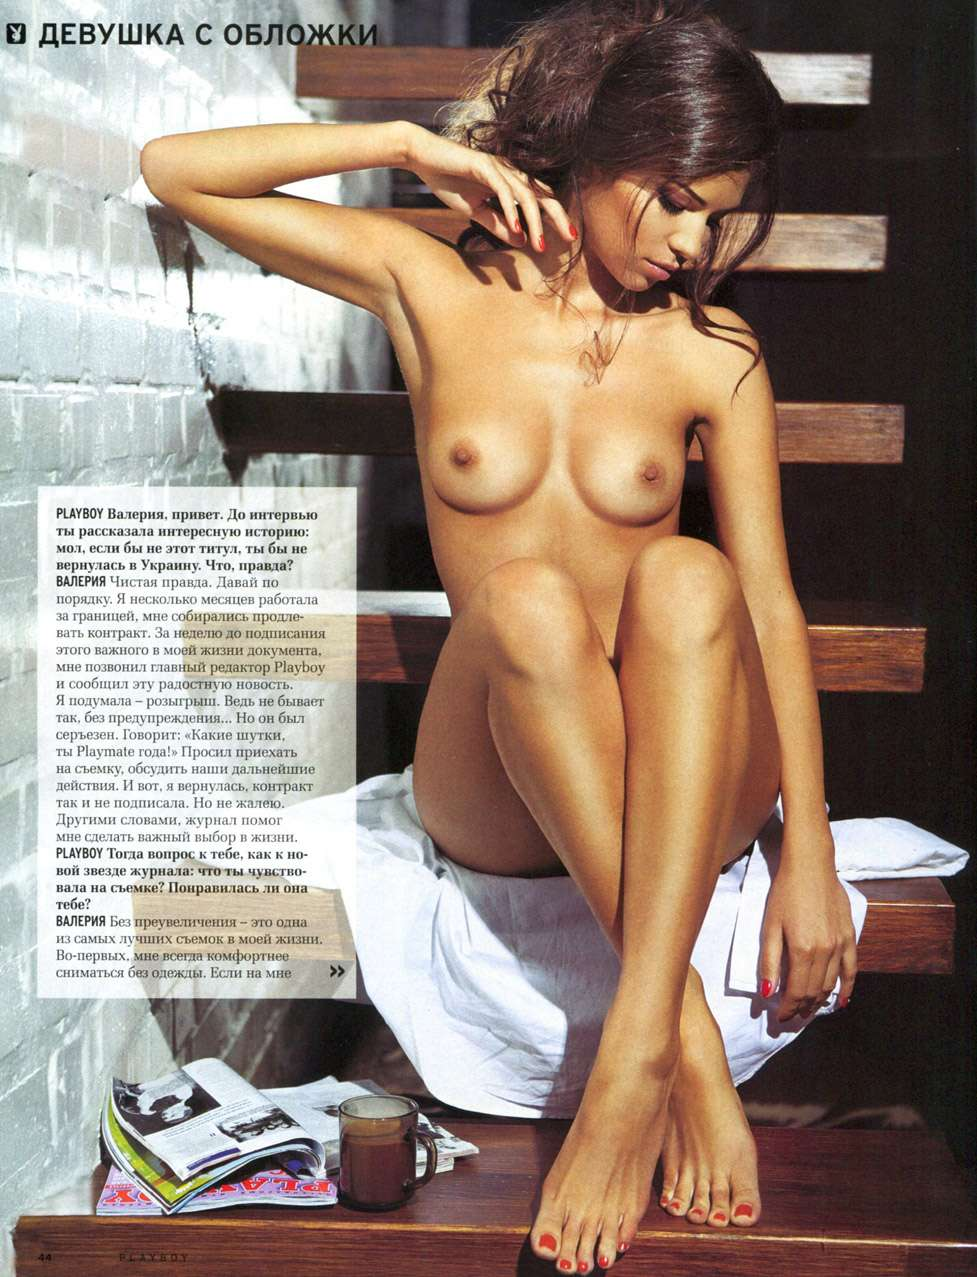 Валерия Розова / Valeria Rozova in Playboy Ukraine november 2010